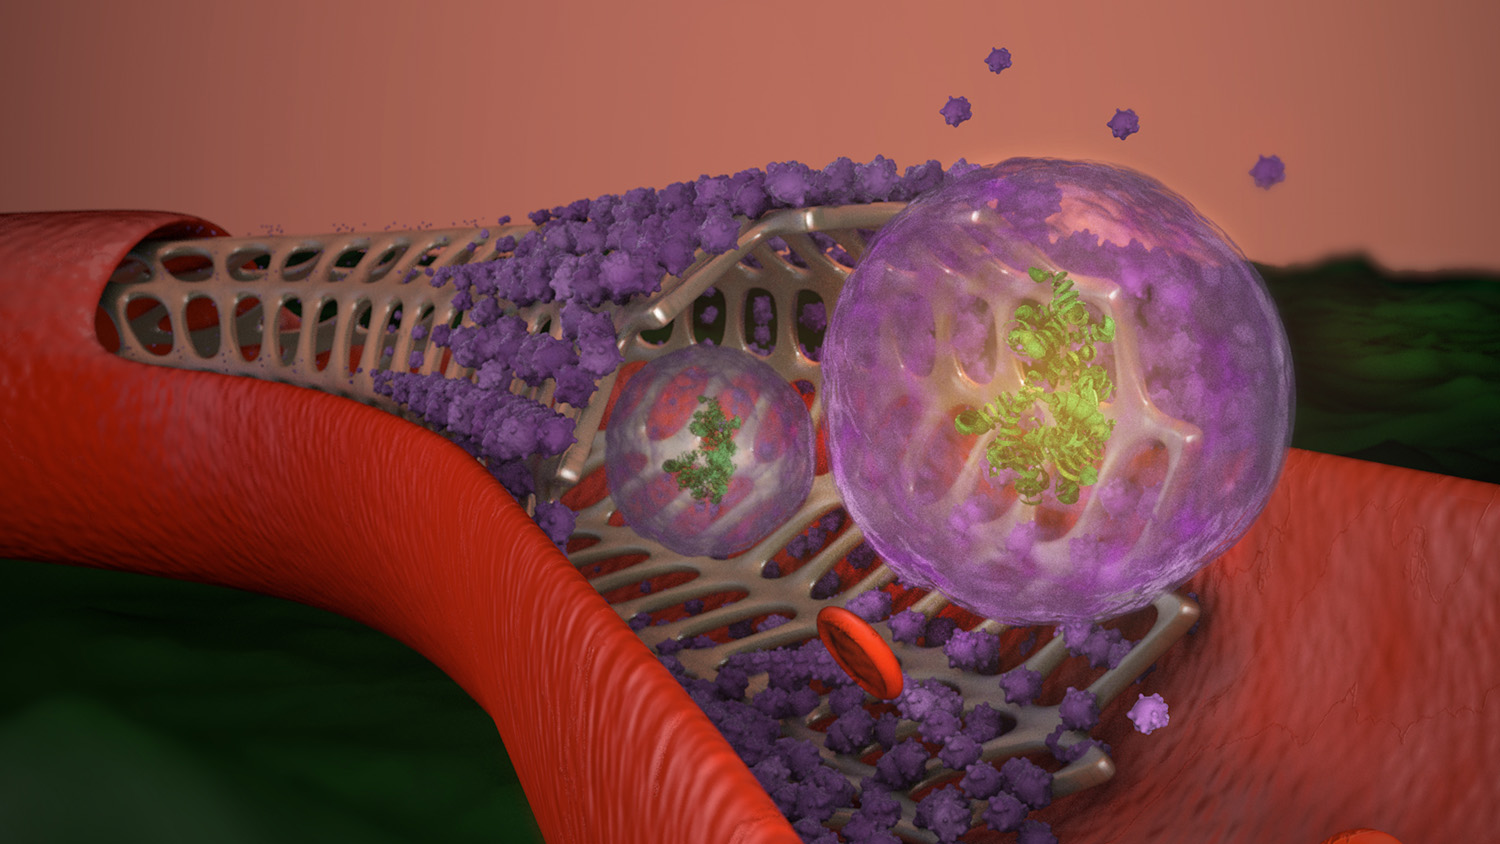 An artist's impression of the new exosome-eluding stent, which can promote healing while preventing inflammatory responses